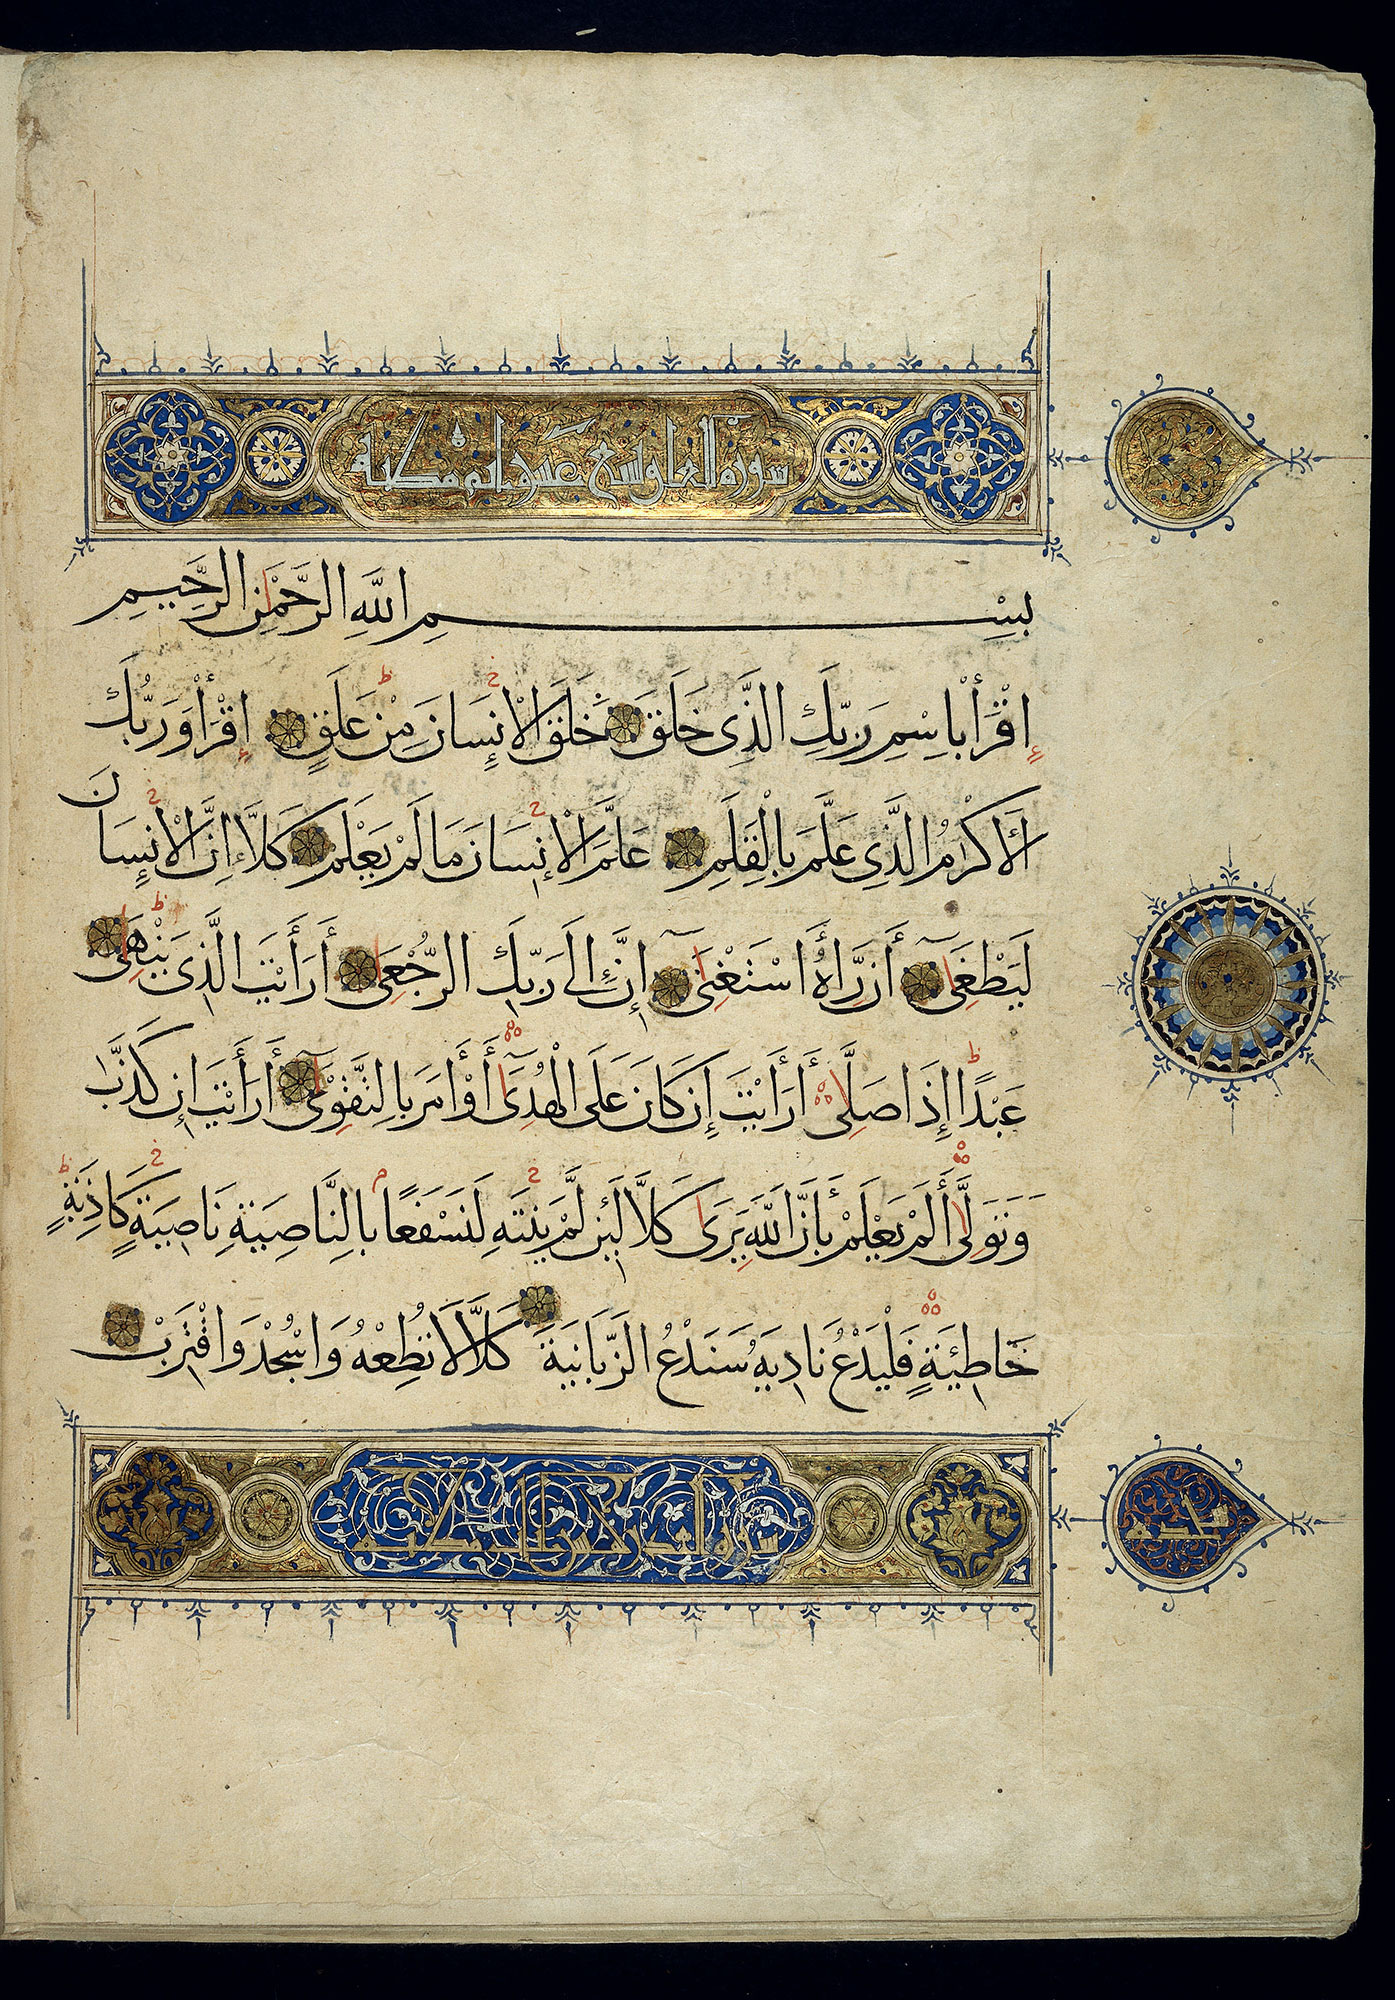 A 14th century Mamluk Qur'an, f. 303v